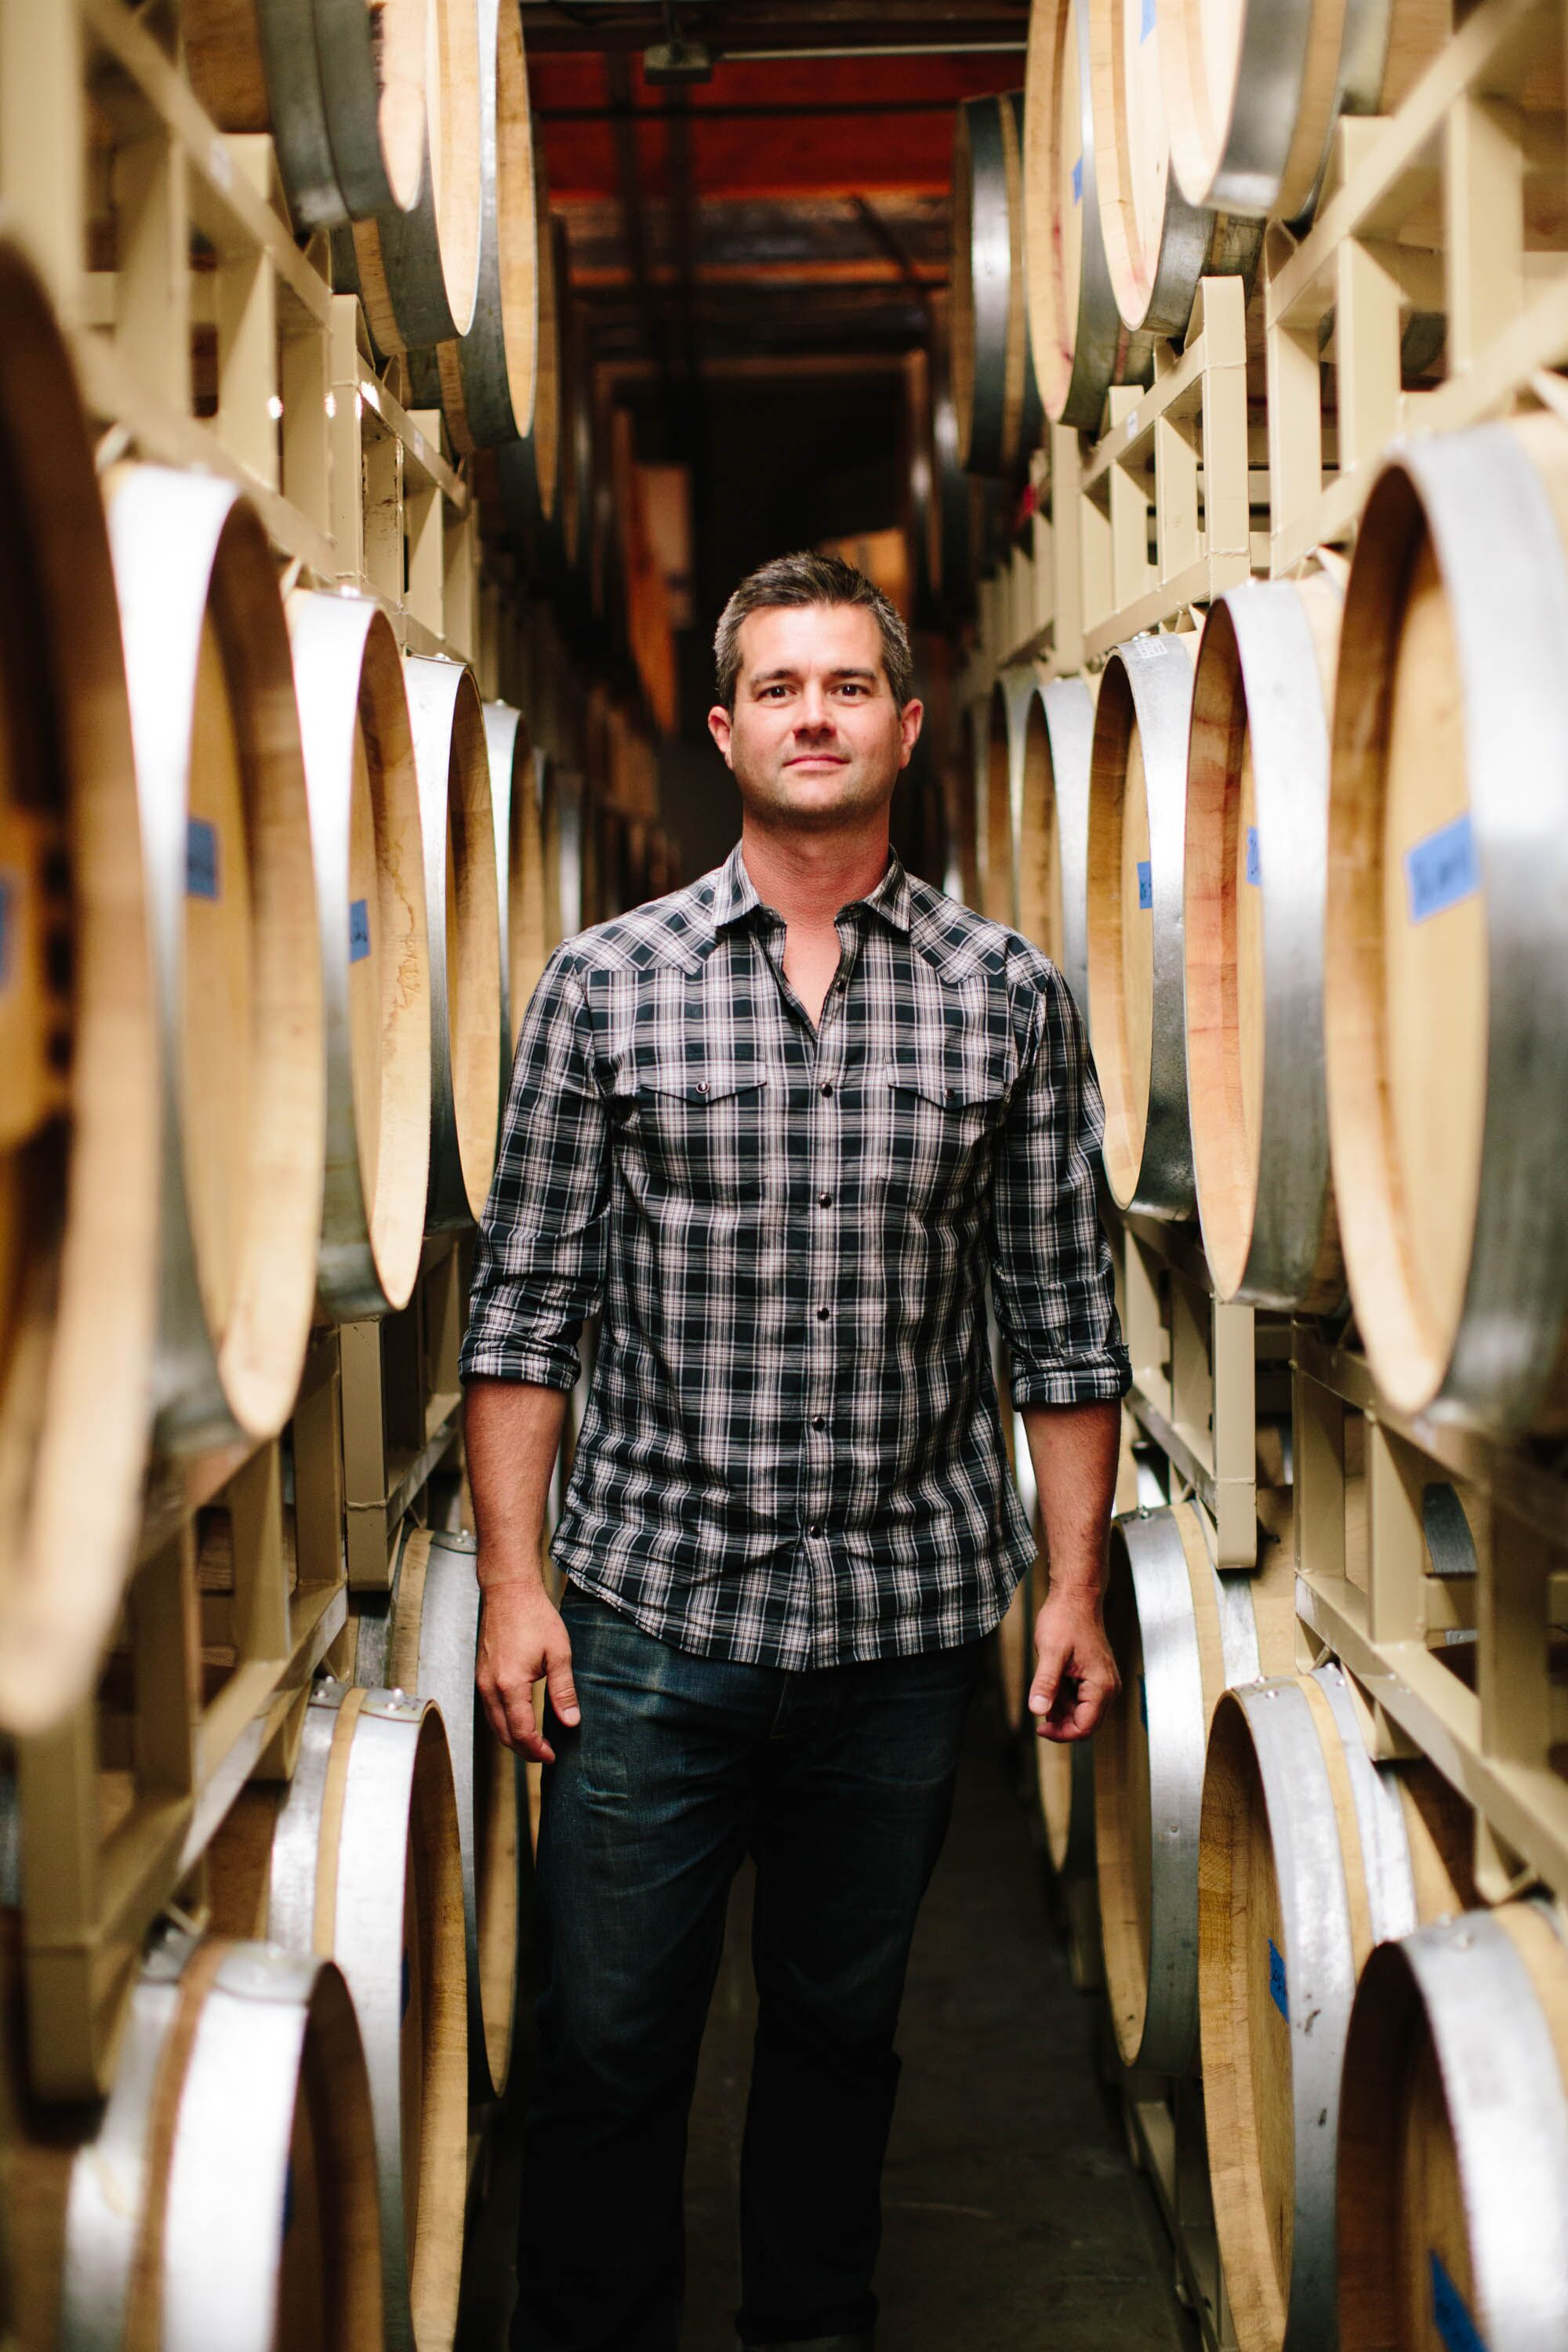 The talented Morgan Lee crafts some beautiful wines for Block Wines.